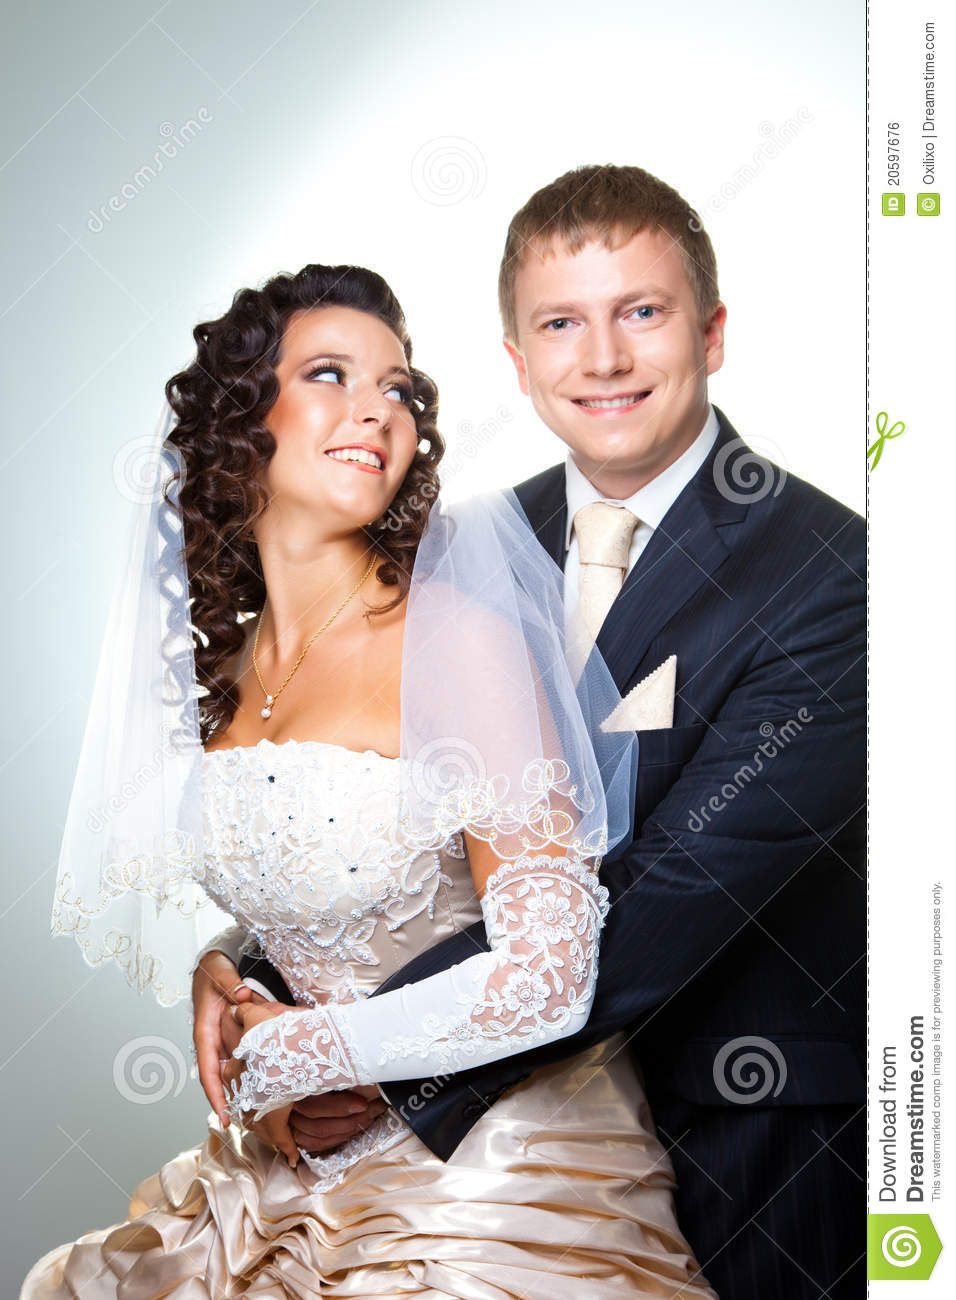 Bride And Groom Romantic Newly Married Couple Embracing